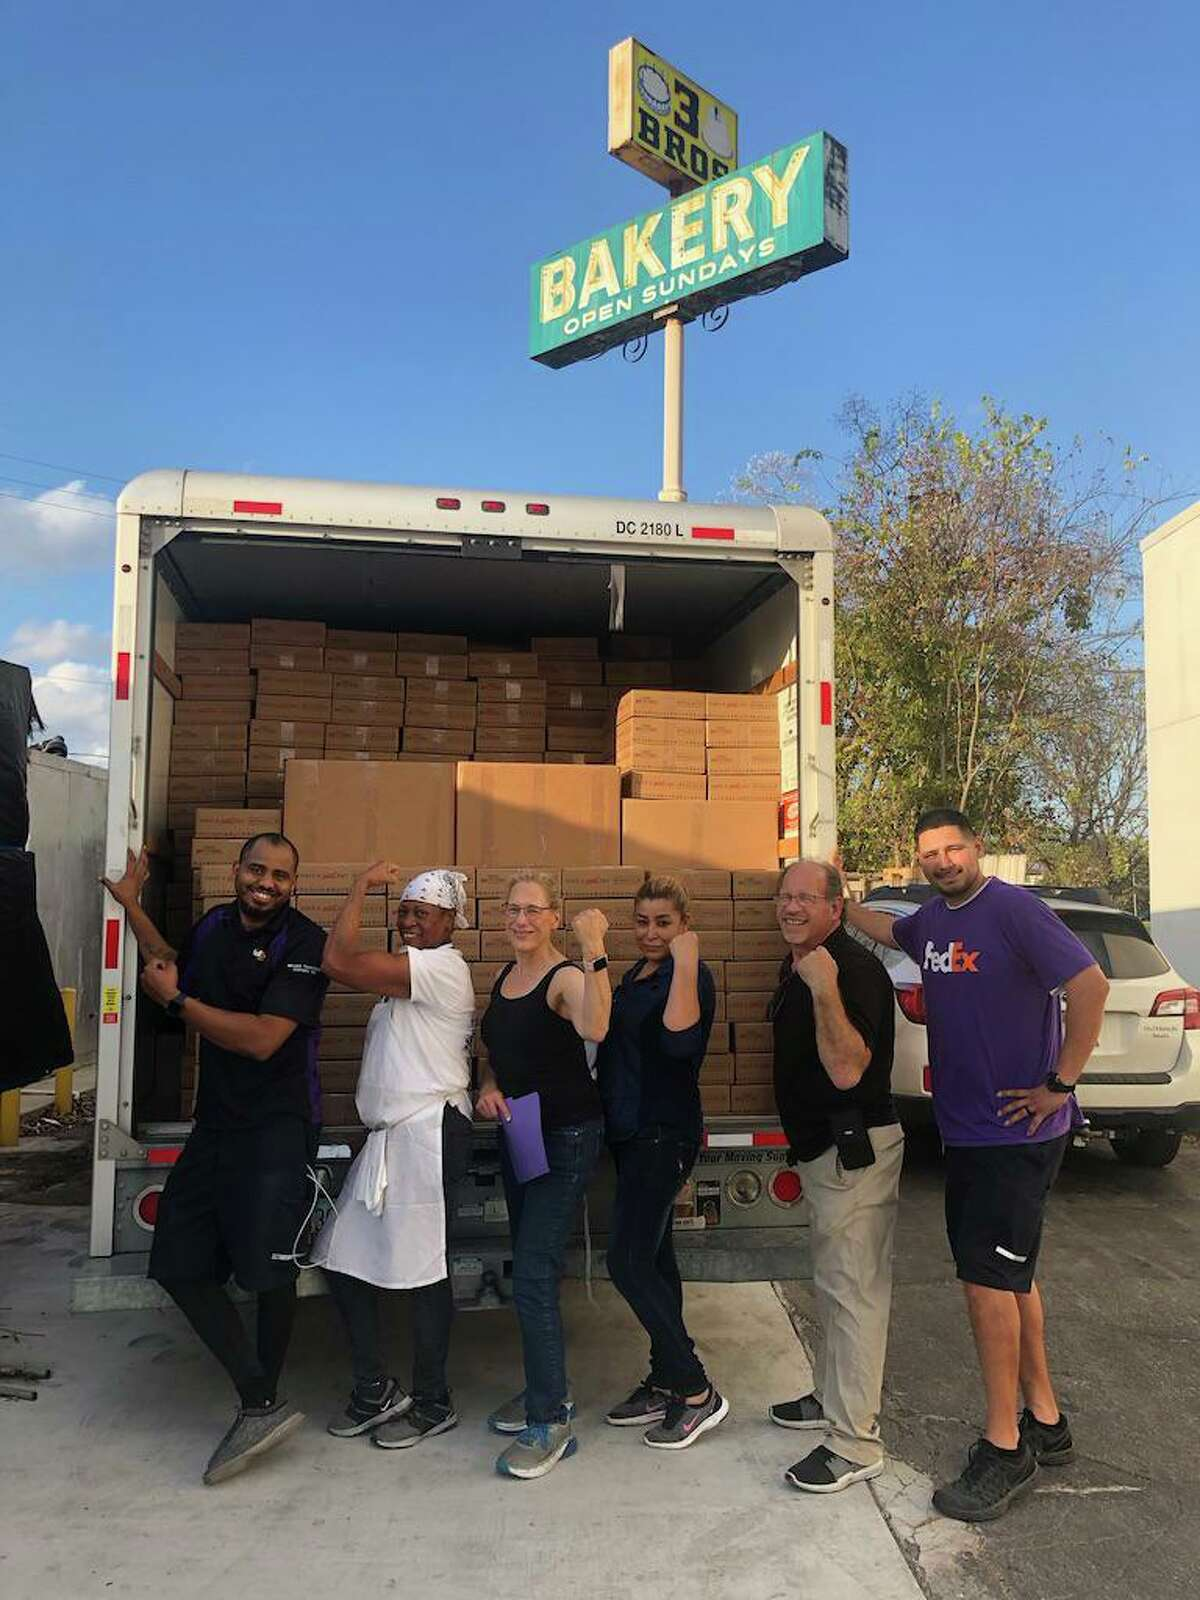 Three Brothers Bakery is hoping to sell 25,000 to 50,000 pecan pies to help survive the COVID-19 pandemic. Here, its crew set their all-time record in December 2019, shipping out about 4,000 pies in just two days.